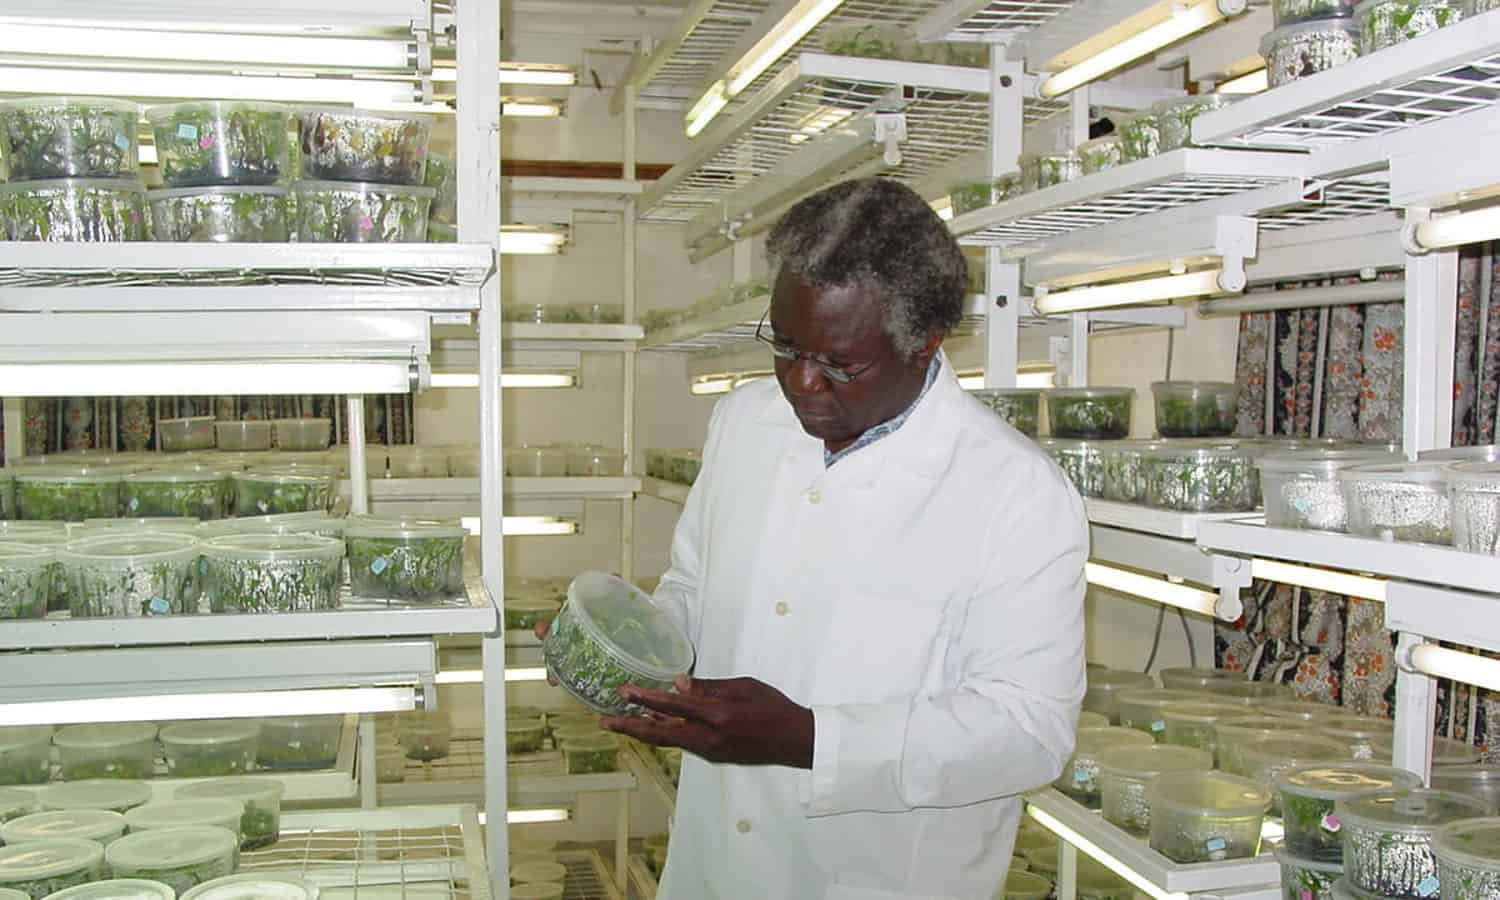 Dr. Calestous Juma, champion for innovation and technology to transform Africa, passed away on December 15 at the age of 64.